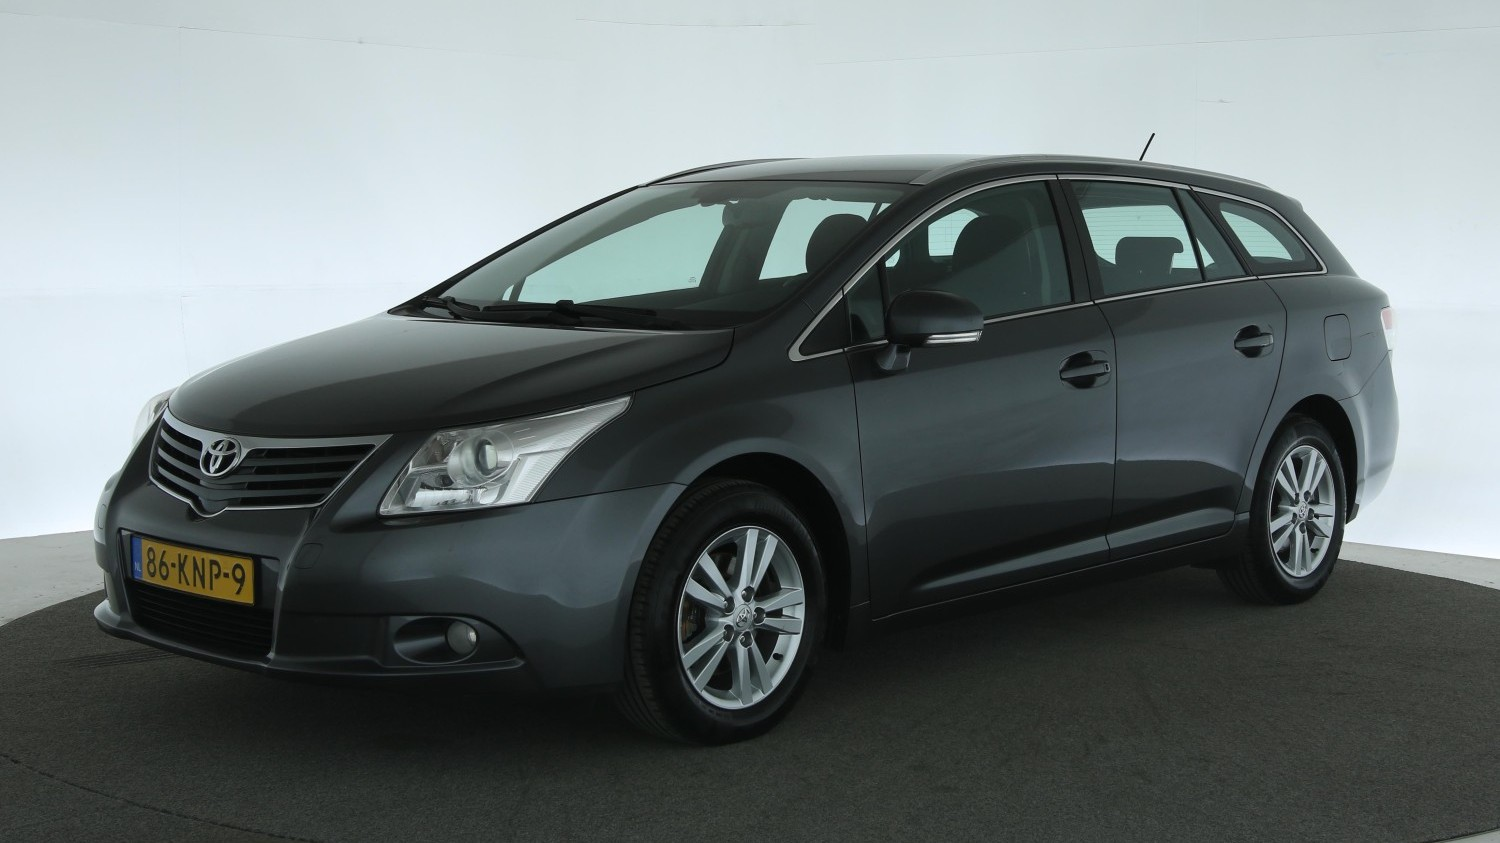 Toyota Avensis Station 2010 86-KNP-9 1